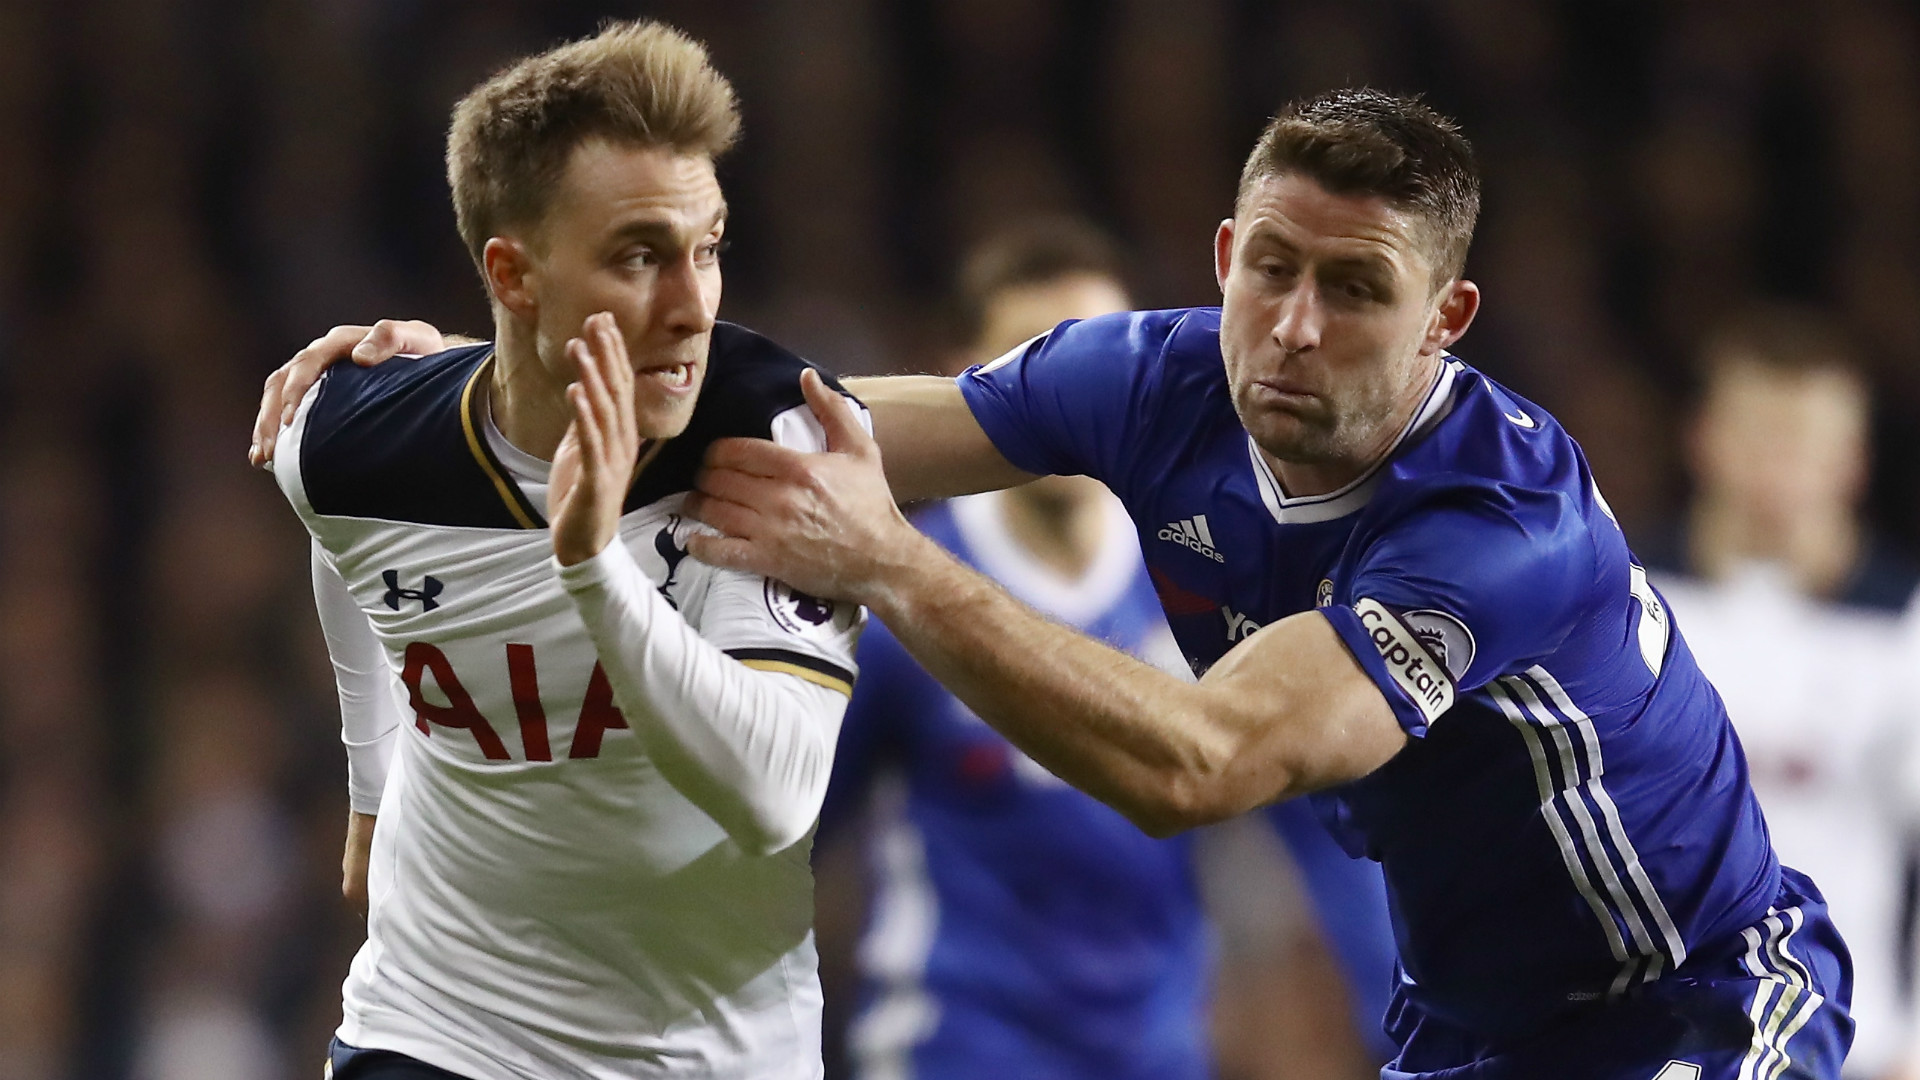 Chelsea vs Tottenham: TV channel, stream, kick-off time, odds & match preview